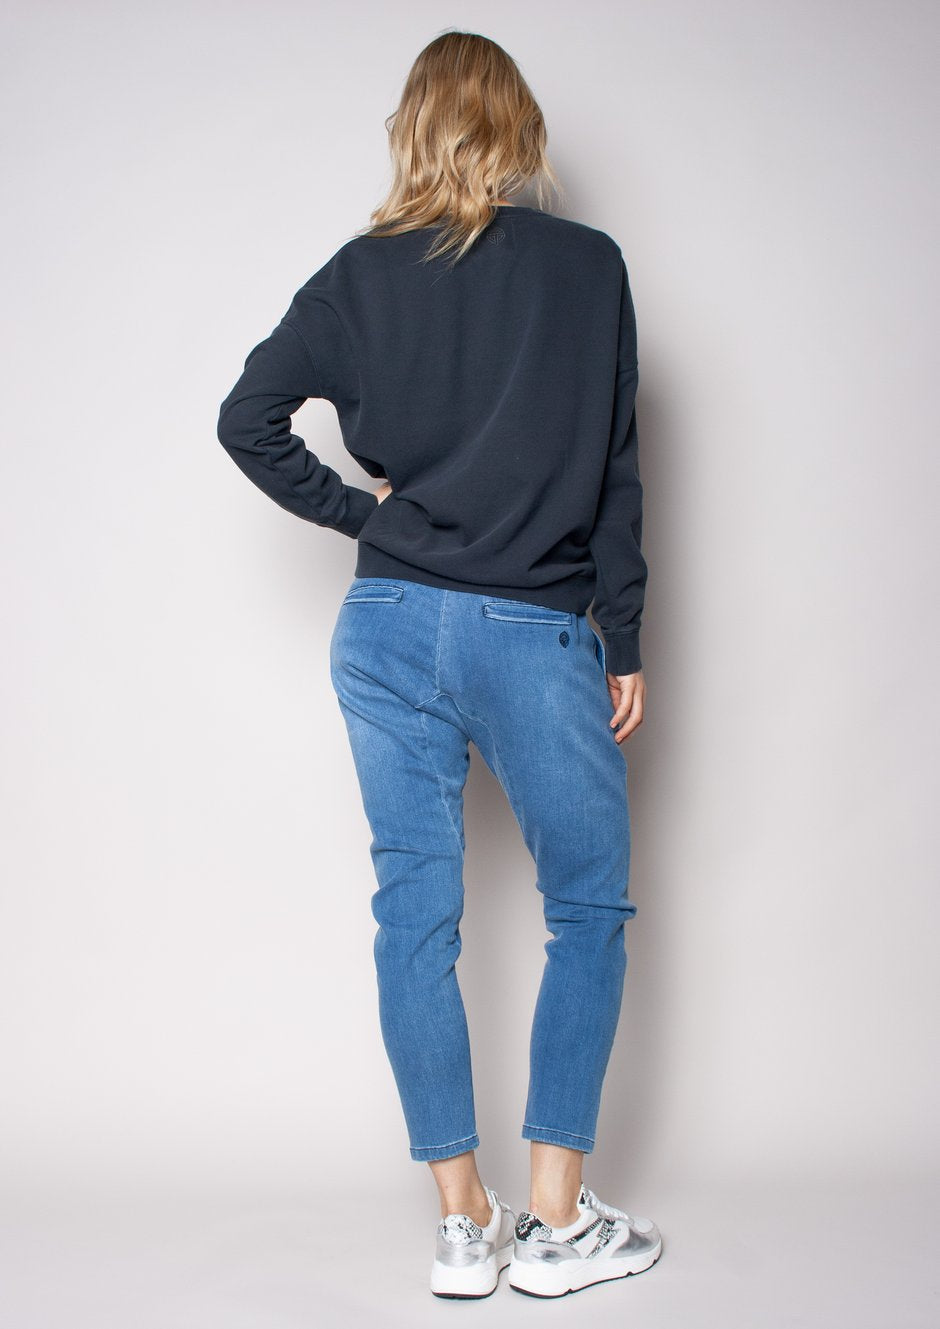 The Drop Crotch Pant - Mid Blues